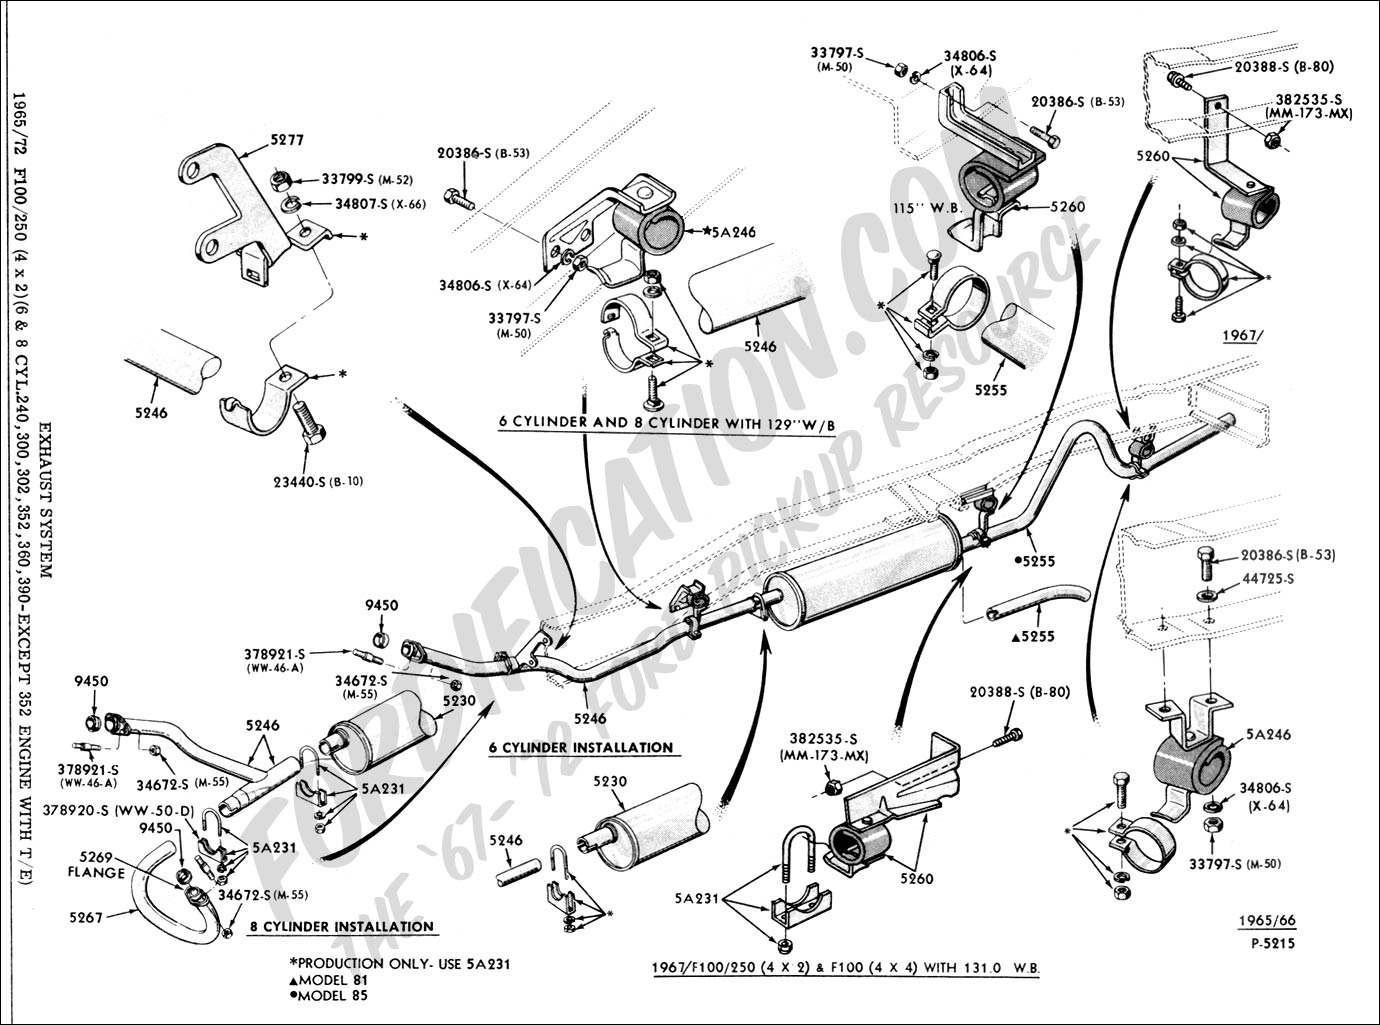 hight resolution of 1996 f150 exhaust diagram wiring diagram go 2006 ford f150 exhaust system 2006 f150 exhaust diagram